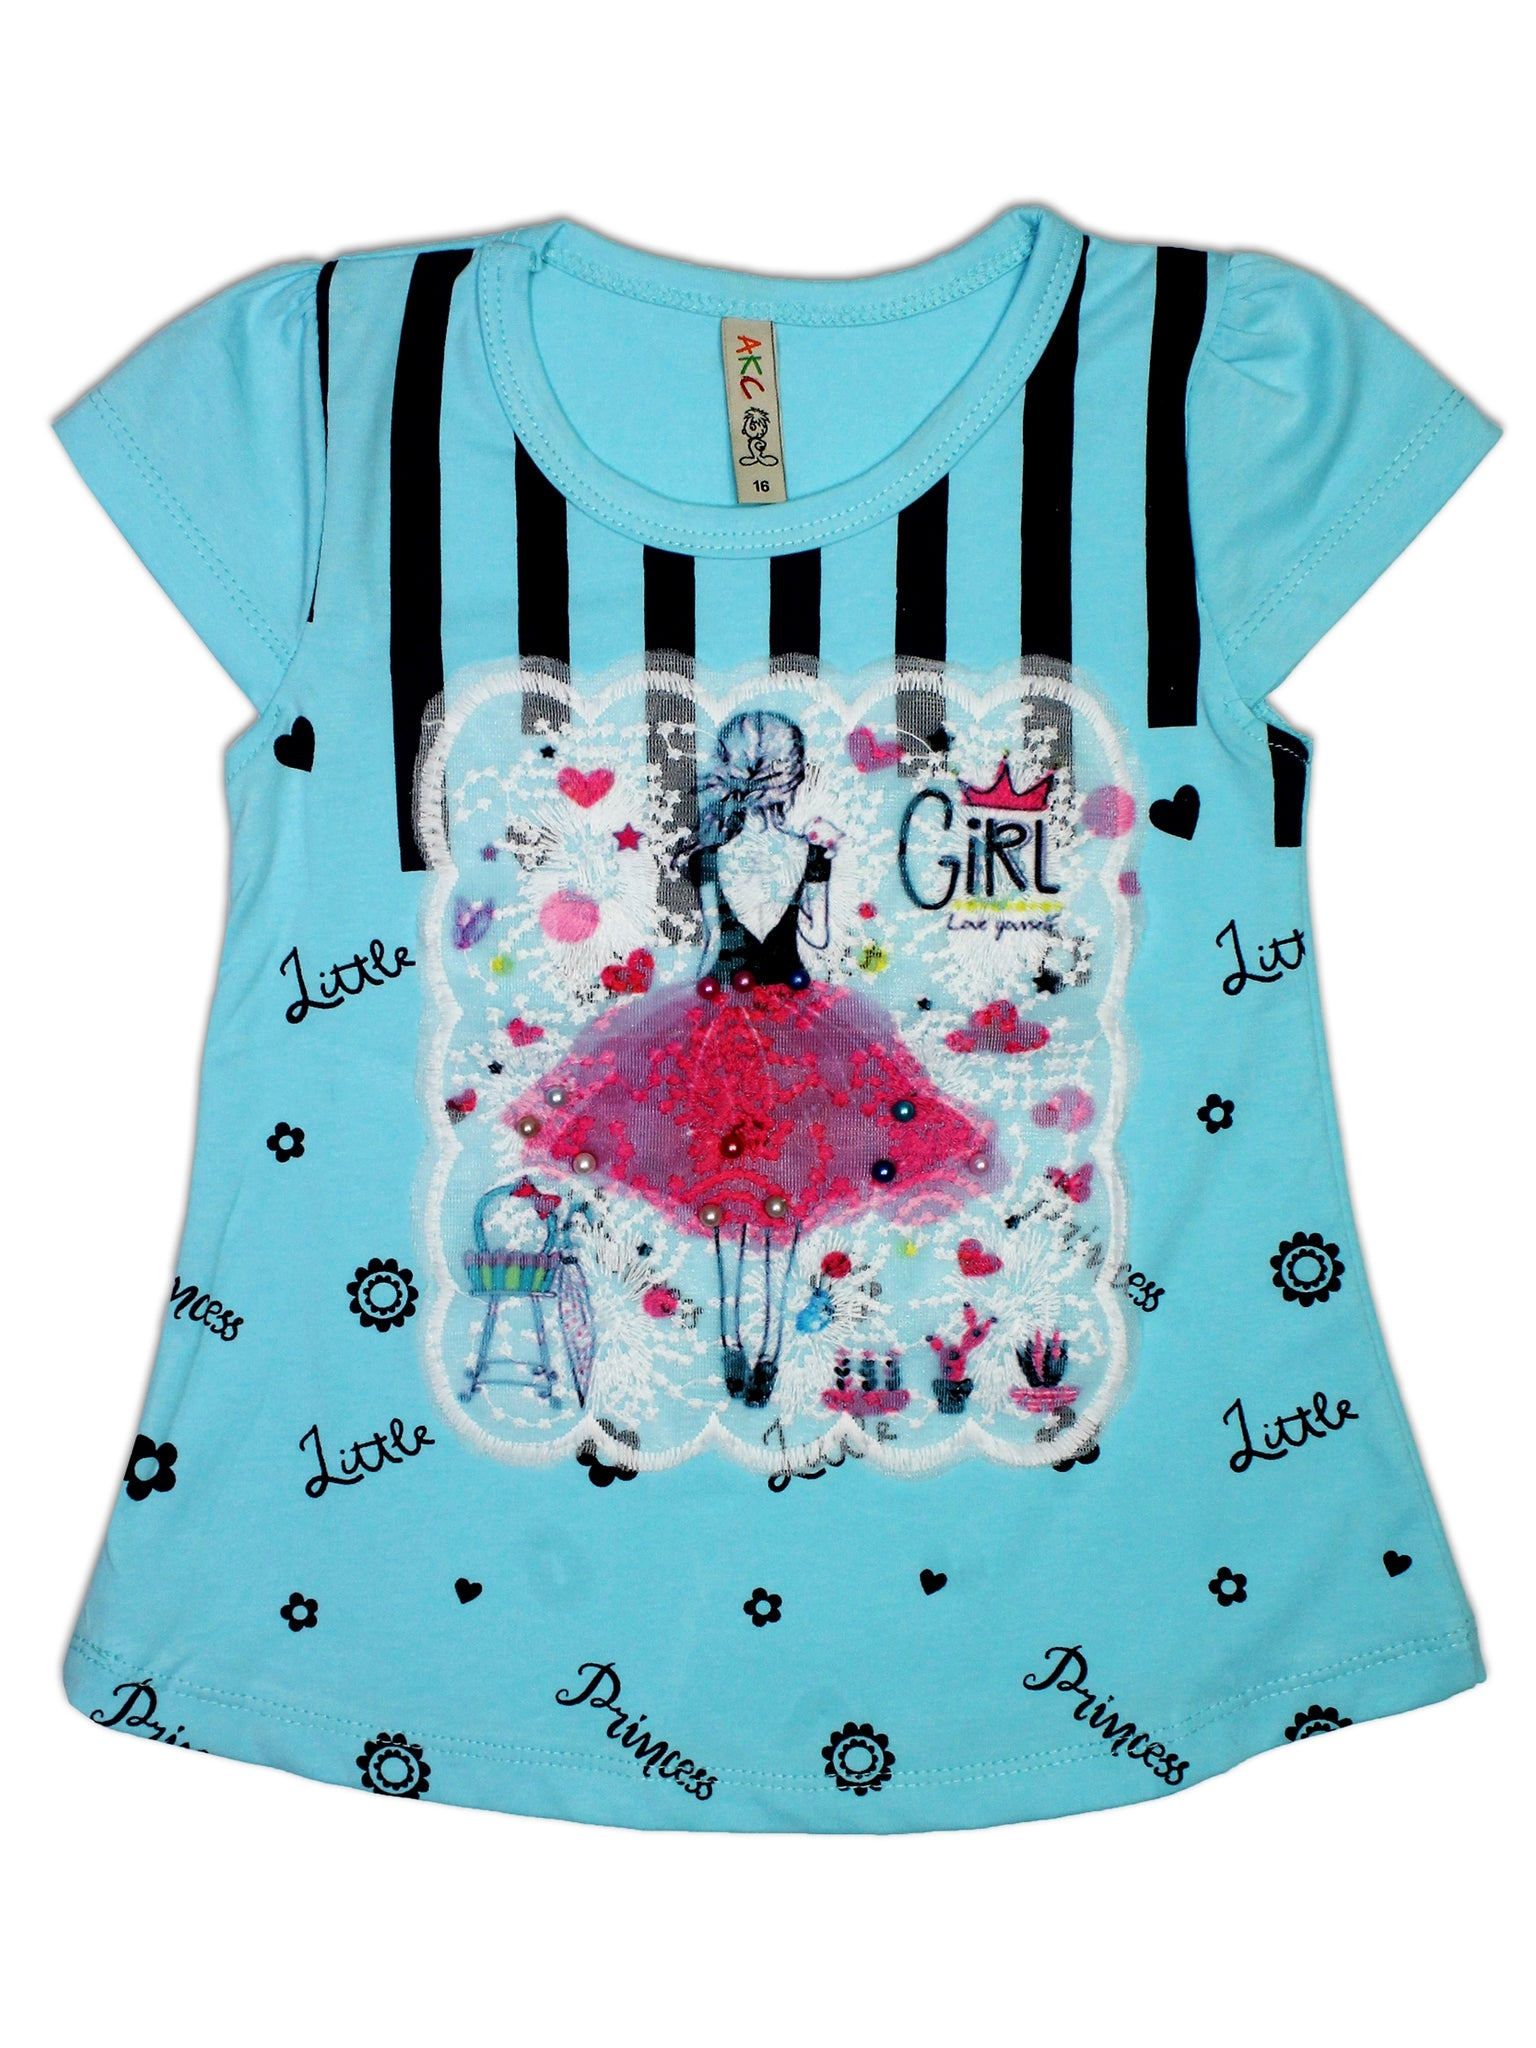 AK3 2.5Yrs - 8Yrs T-Shirt For Girls Net Embroidery Girl Style Soft Blue